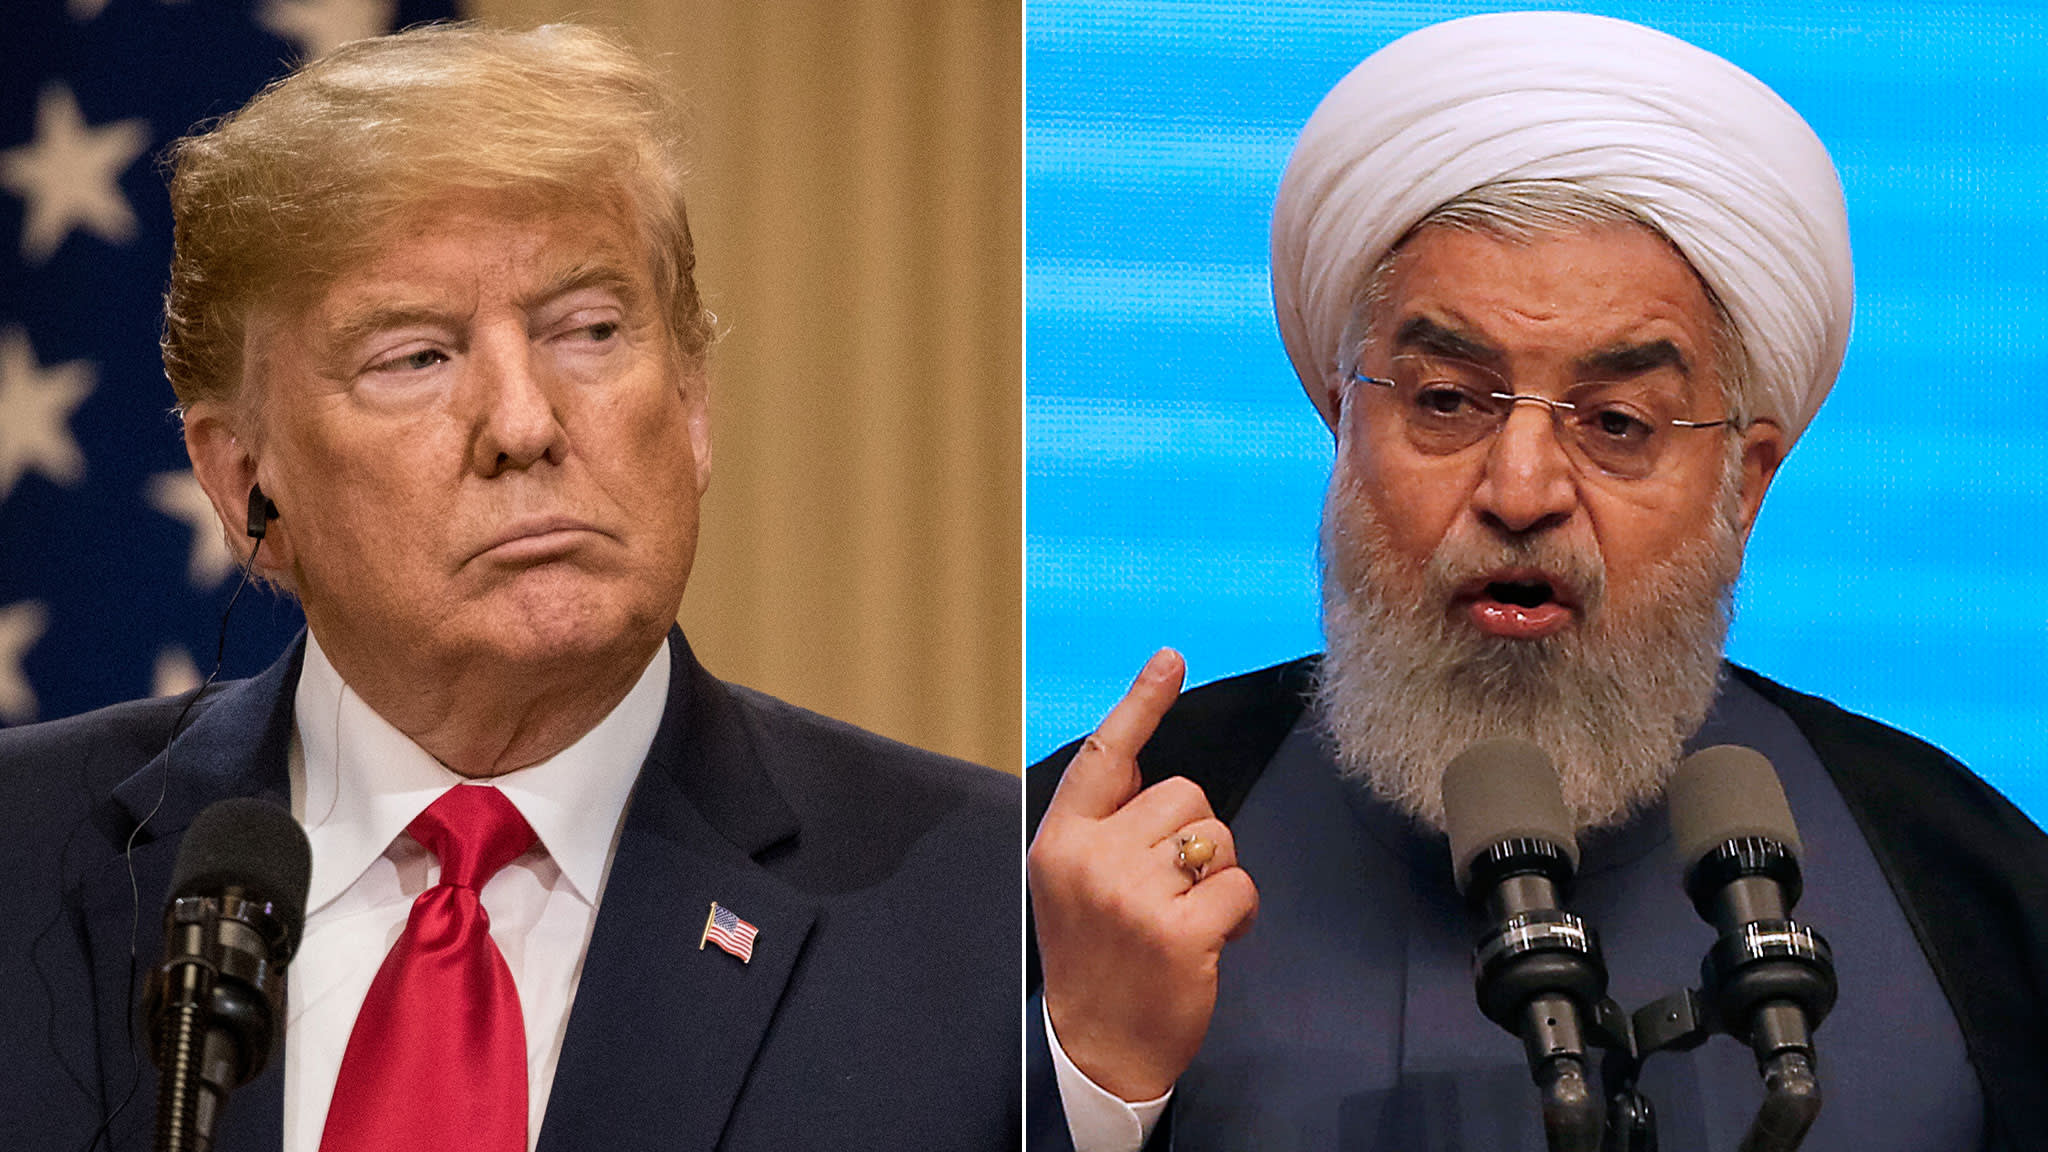 Donald Trump threatens Iran with severe 'consequences'